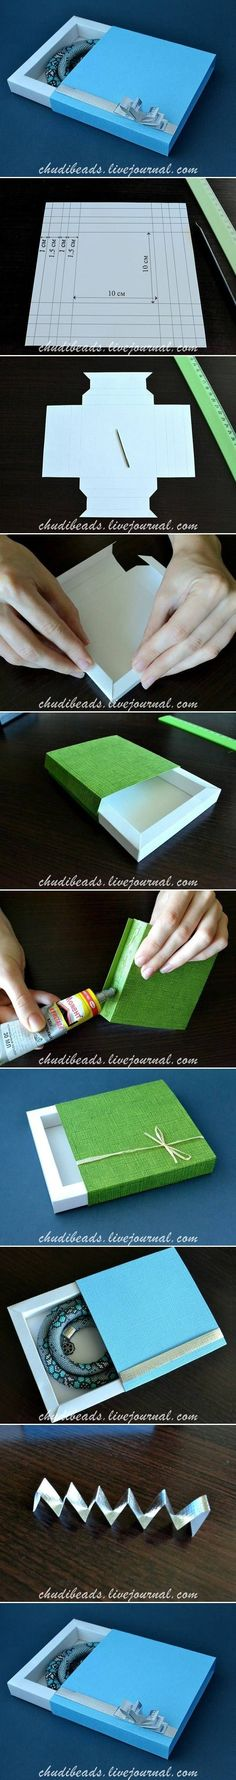 DIY Square Gift Box: